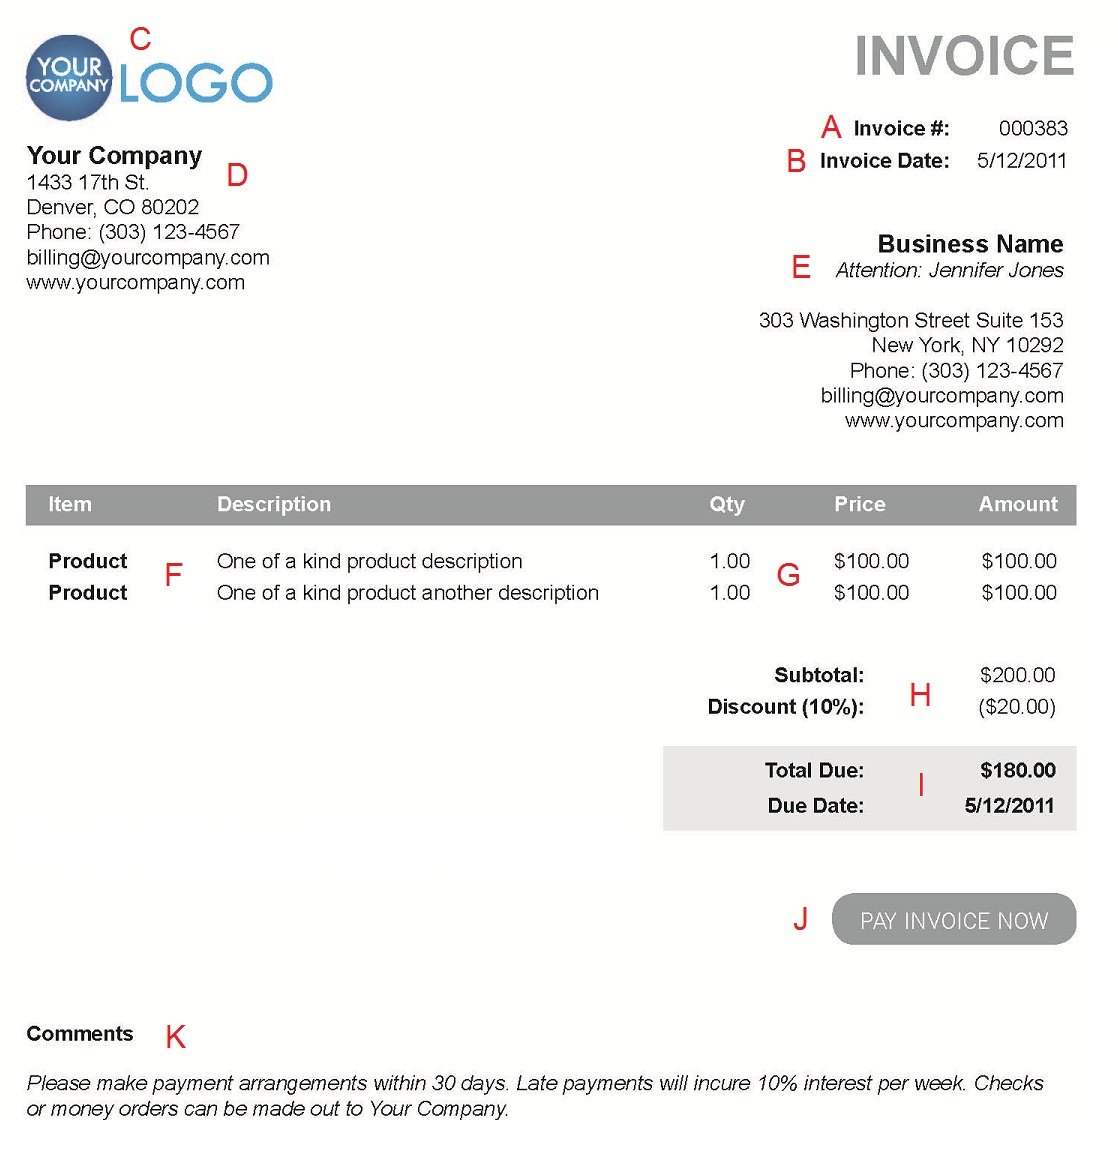 Soulfulpowerus  Marvellous The  Different Sections Of An Electronic Payment Invoice With Interesting A  With Easy On The Eye Receipt Format For Cheque Payment Also Carbon Receipt In Addition Form For Receipt Of Payment And House Rent Receipts As Well As Official Receipt Definition Additionally Thermal Receipts Bpa From Paysimplecom With Soulfulpowerus  Interesting The  Different Sections Of An Electronic Payment Invoice With Easy On The Eye A  And Marvellous Receipt Format For Cheque Payment Also Carbon Receipt In Addition Form For Receipt Of Payment From Paysimplecom